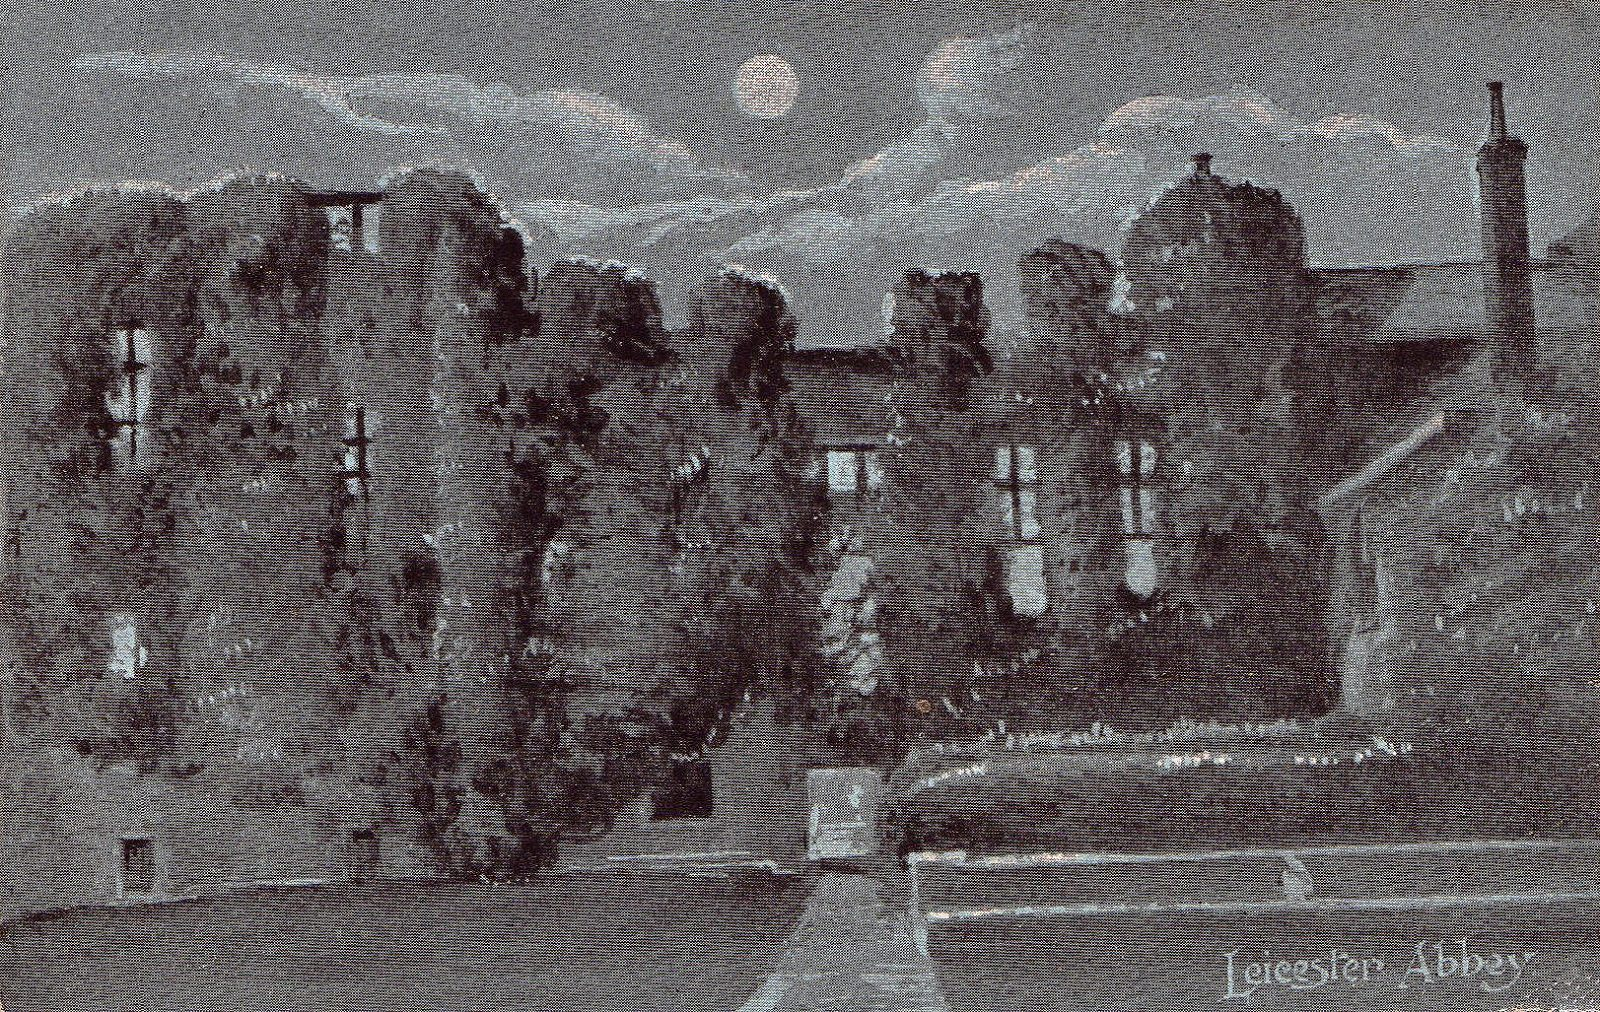 Leicester Abbey, Leicester. 1901-1920: Leicester Abbey ruins shot by moon light. Franked 1905 (File:1519)